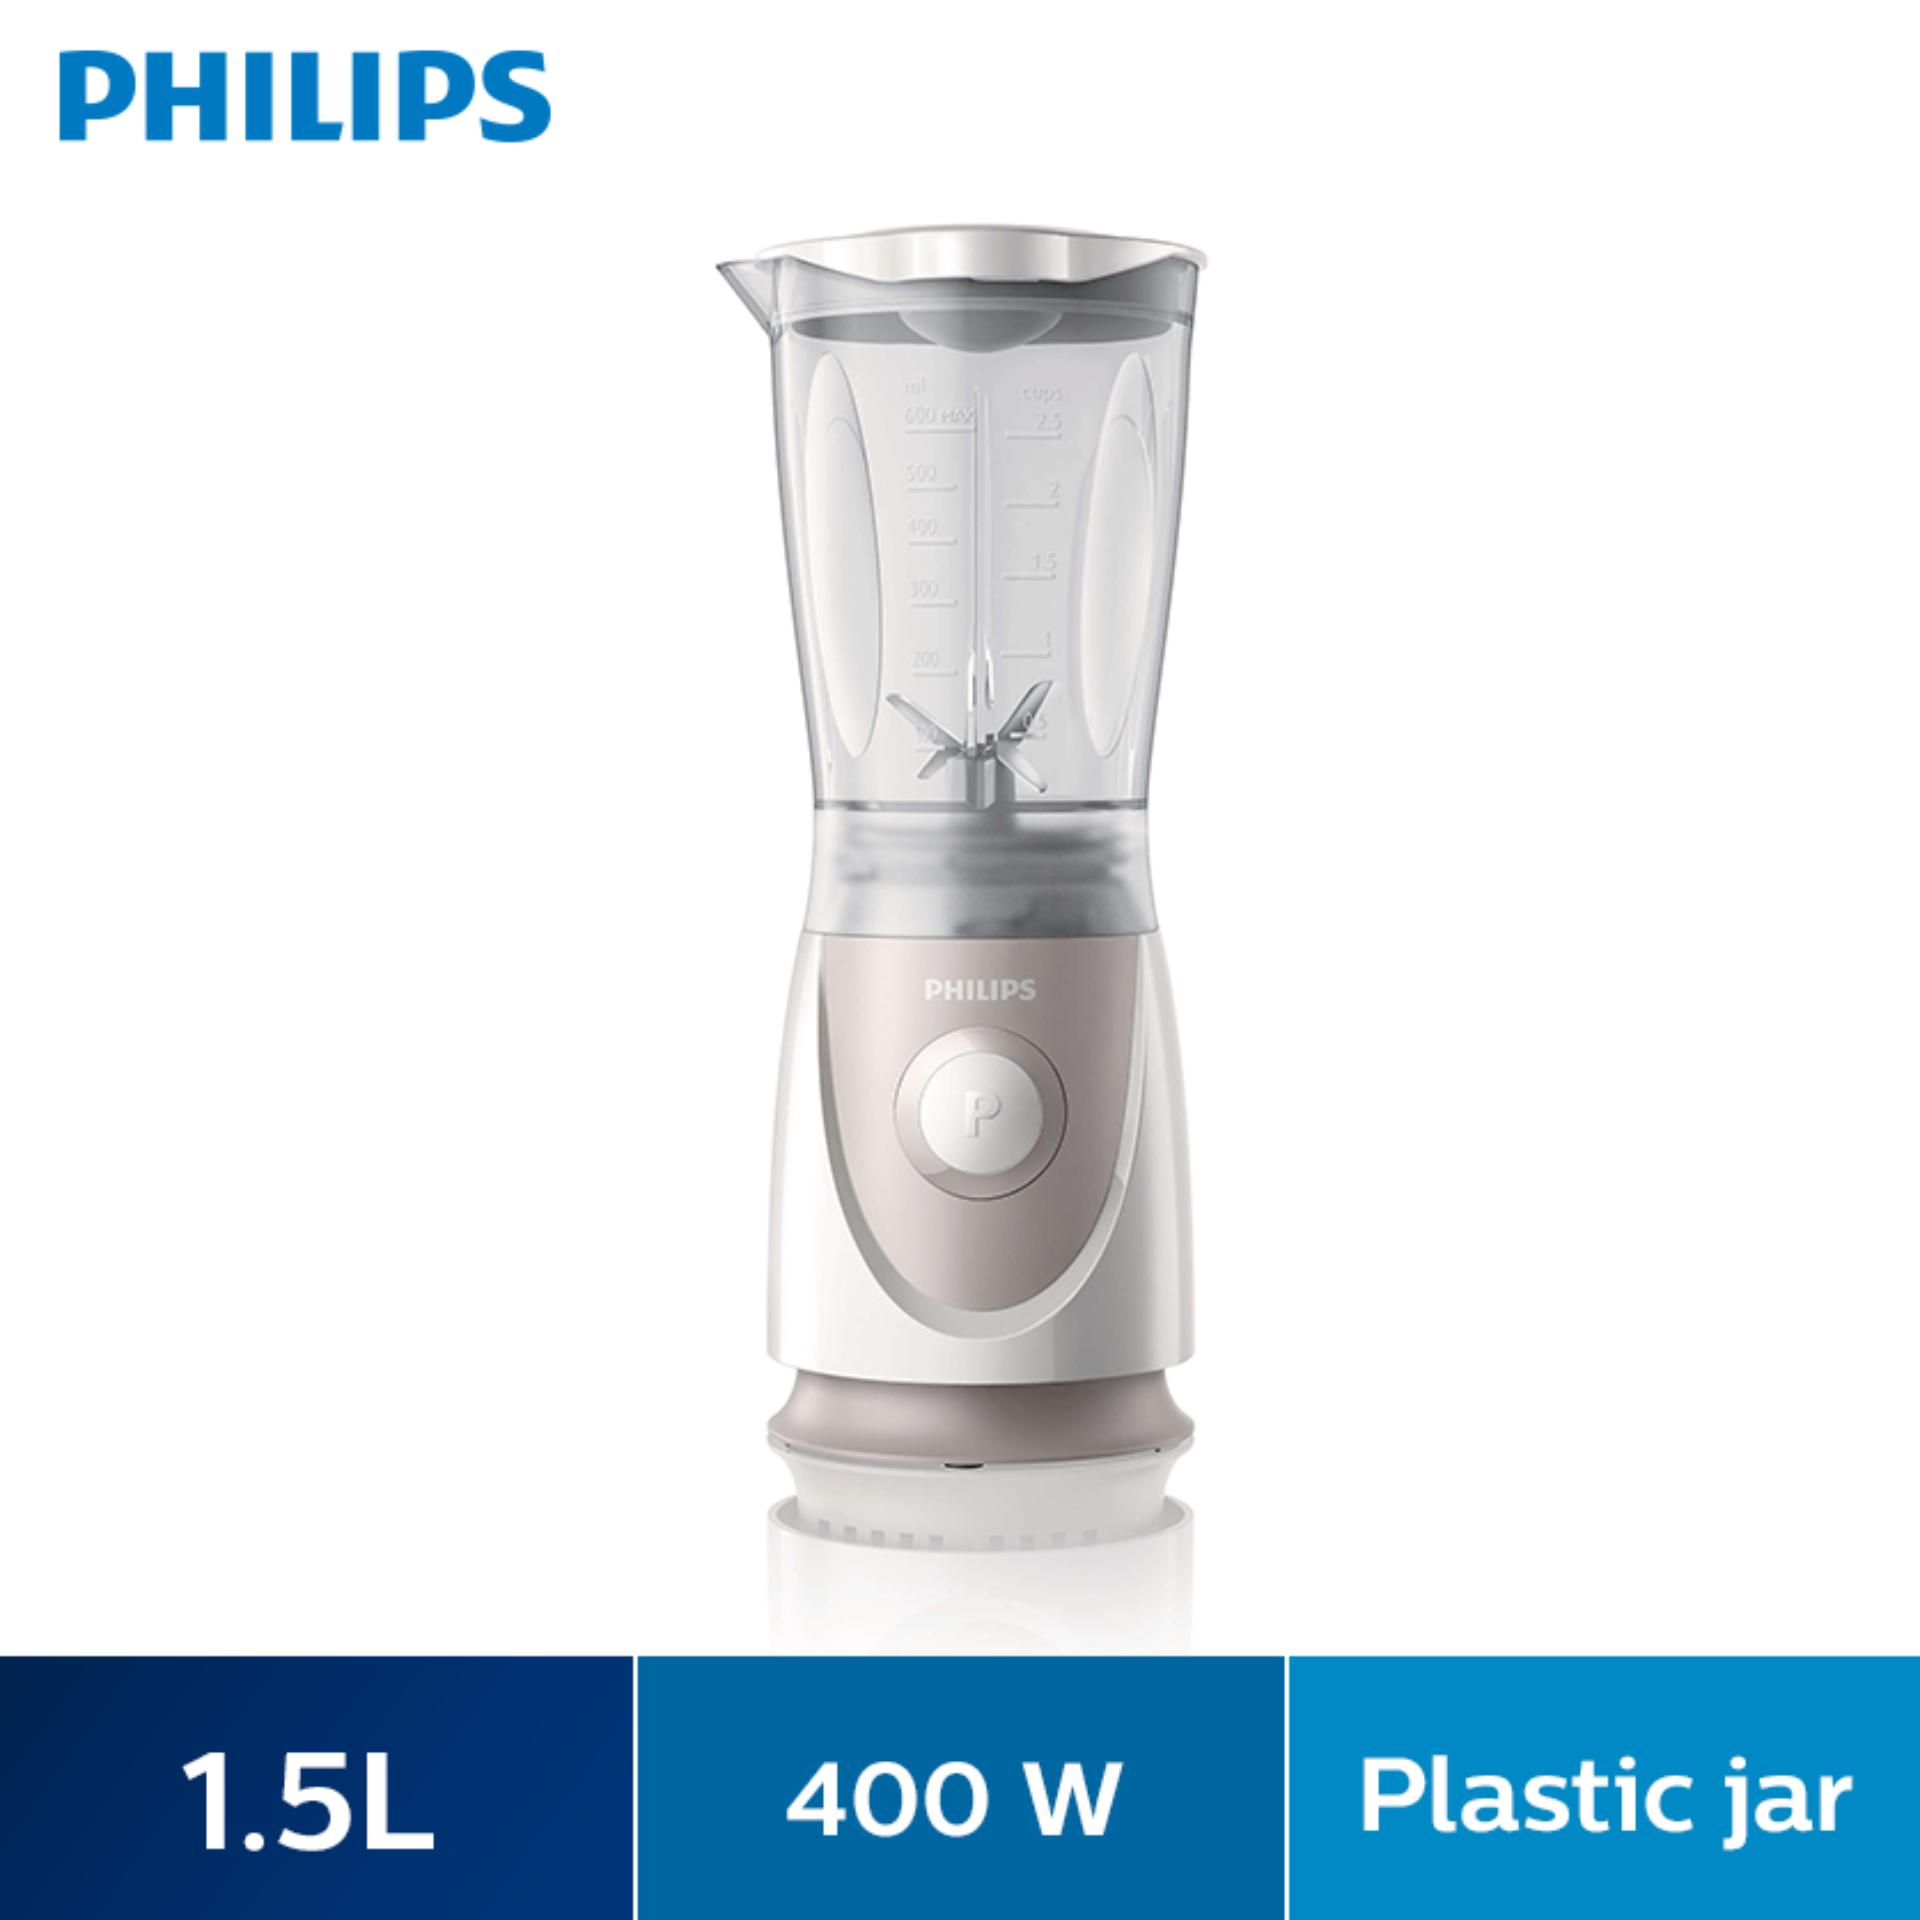 Philips Philippines Blender For Sale Prices Reviews Juicer Extractor Hr1811 Hr2874 Mini 6l